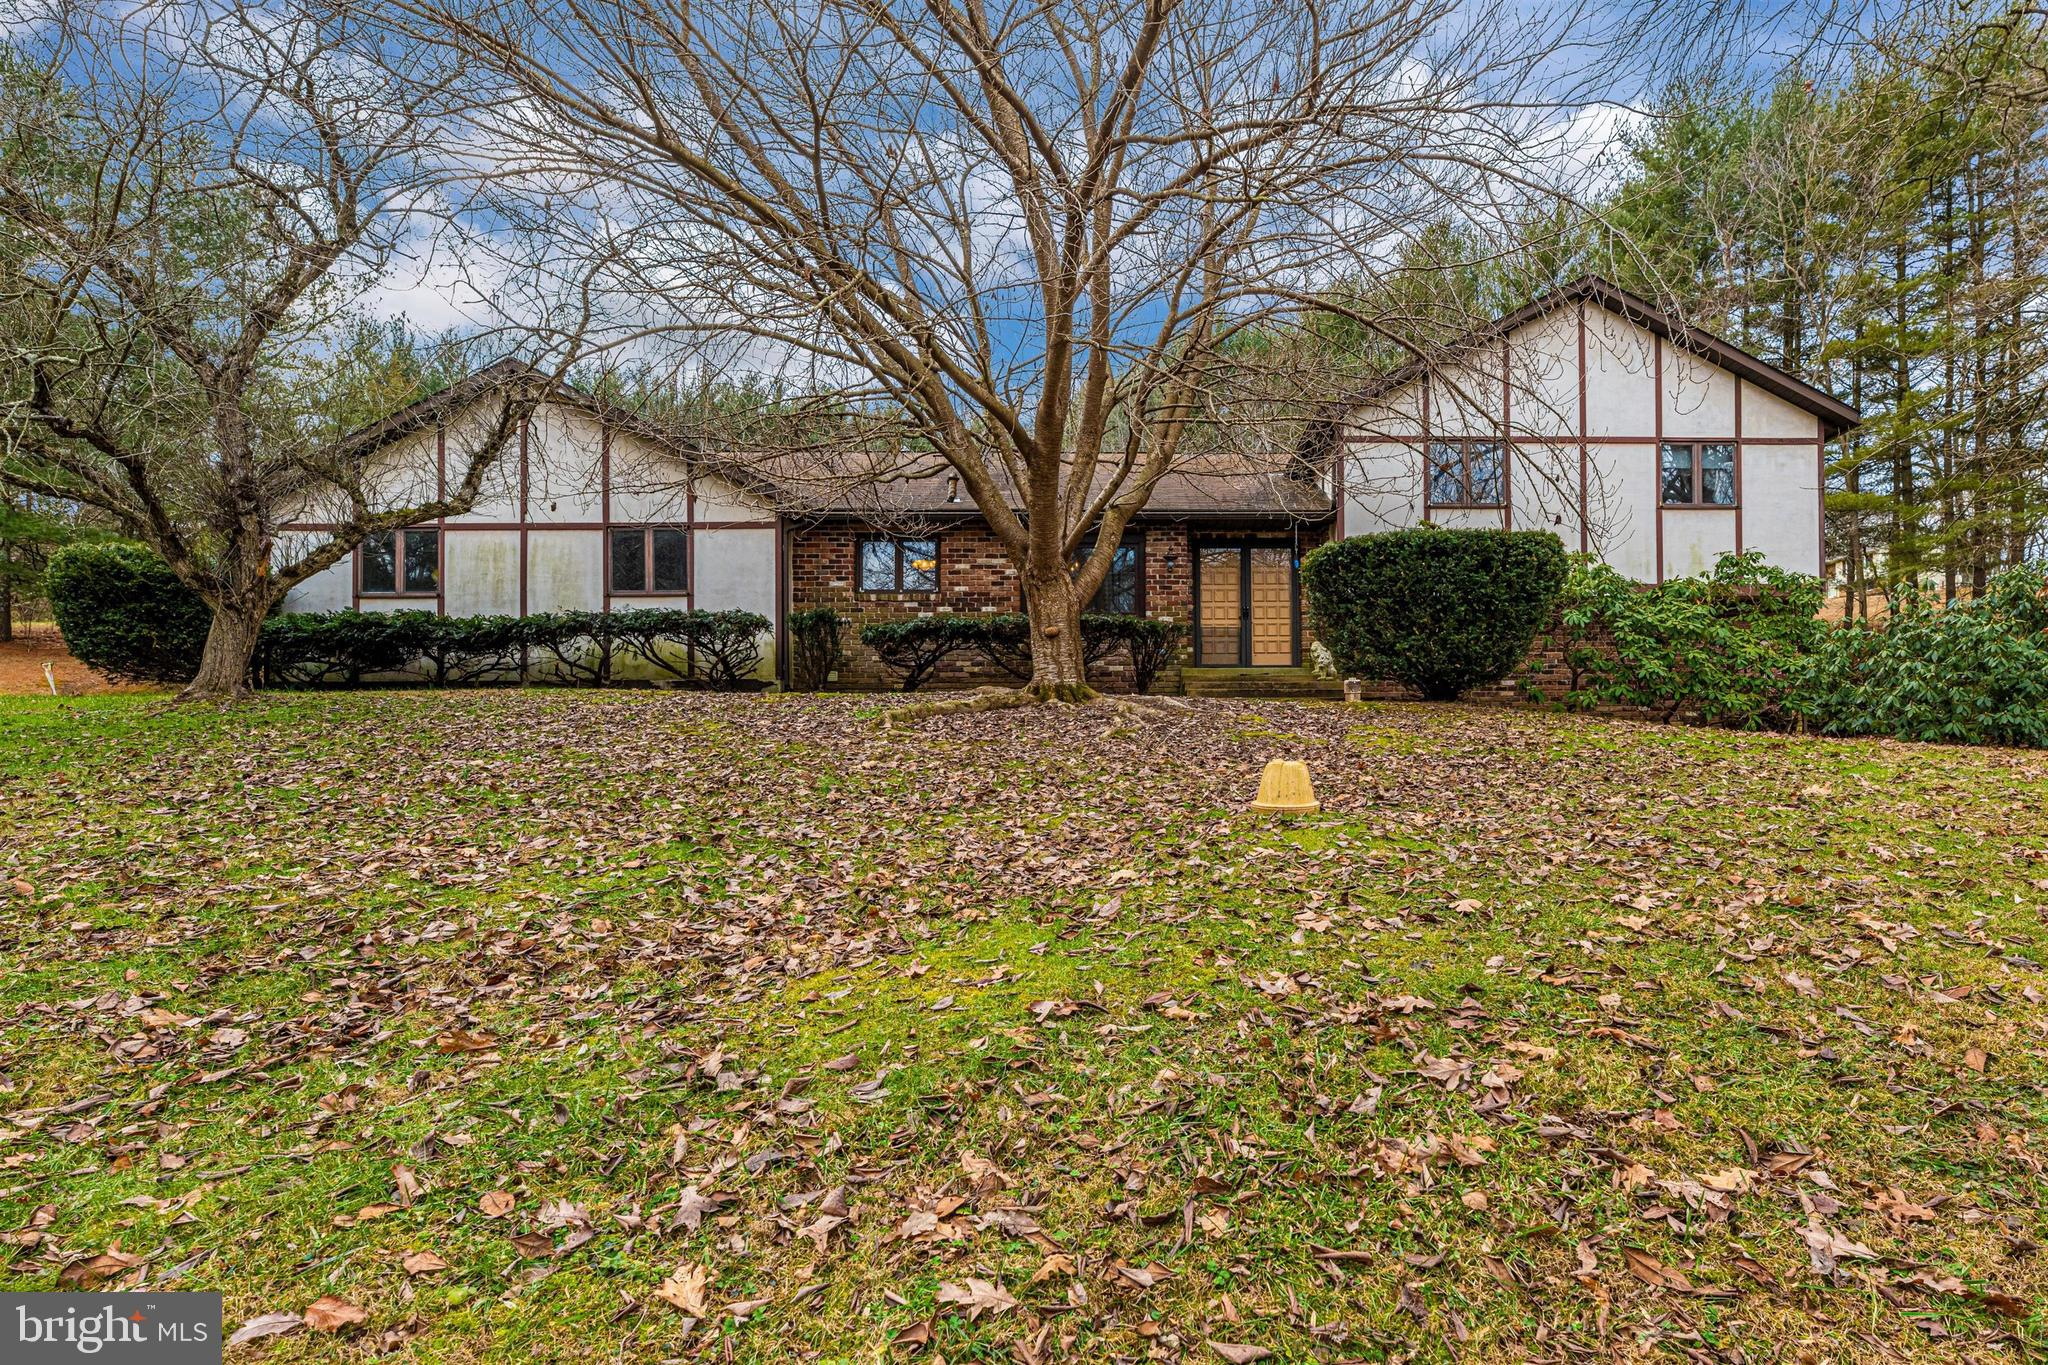 4 Bedroom, 3 Fullbath home on over 5 Private  Acres with a stream and mature trees.  Oversized 2 Car